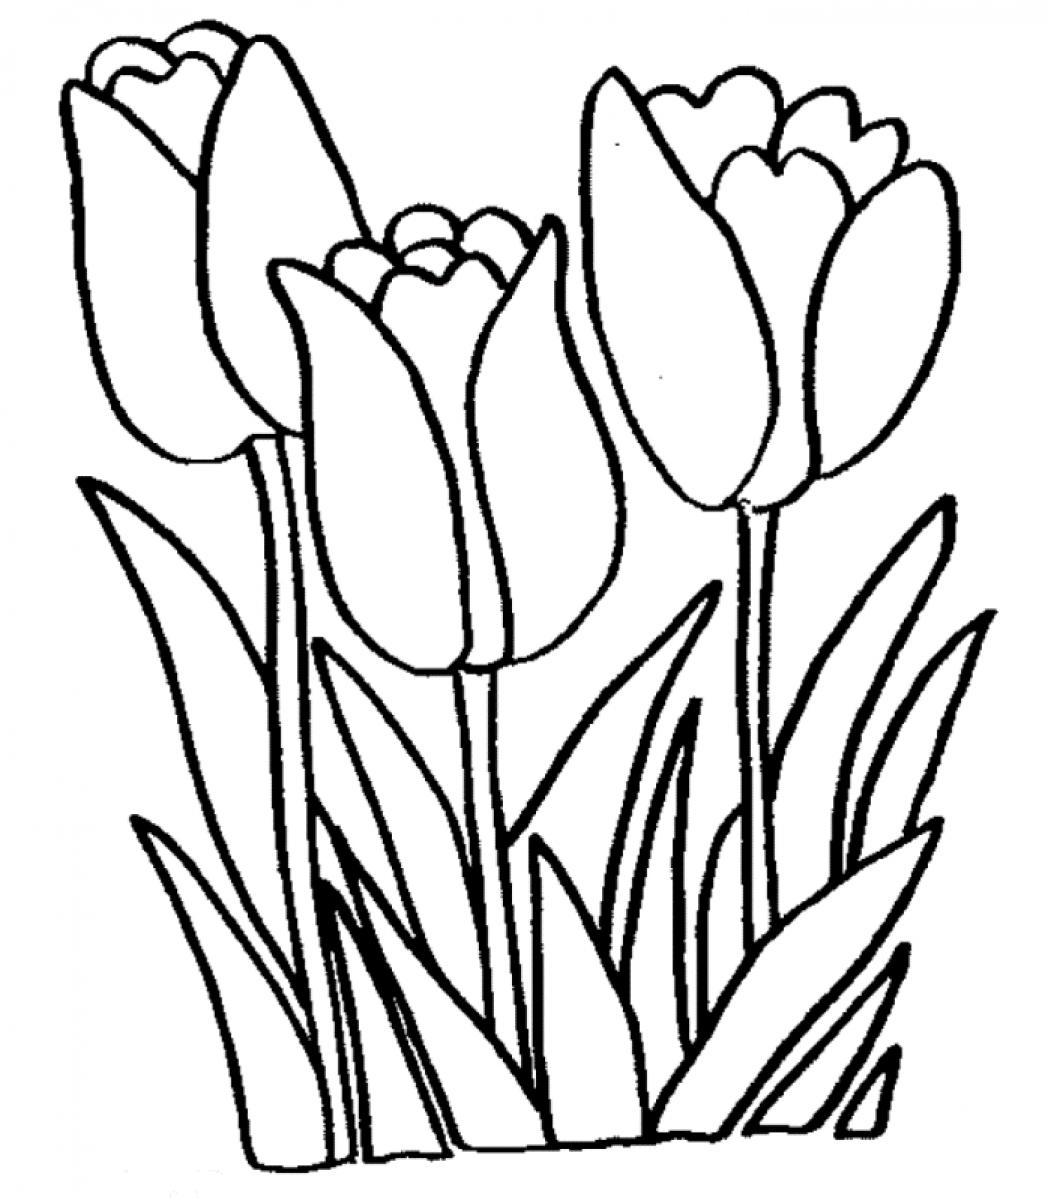 pictures to colour in of flowers large flowers coloring pages to download and print for free of in to colour pictures flowers